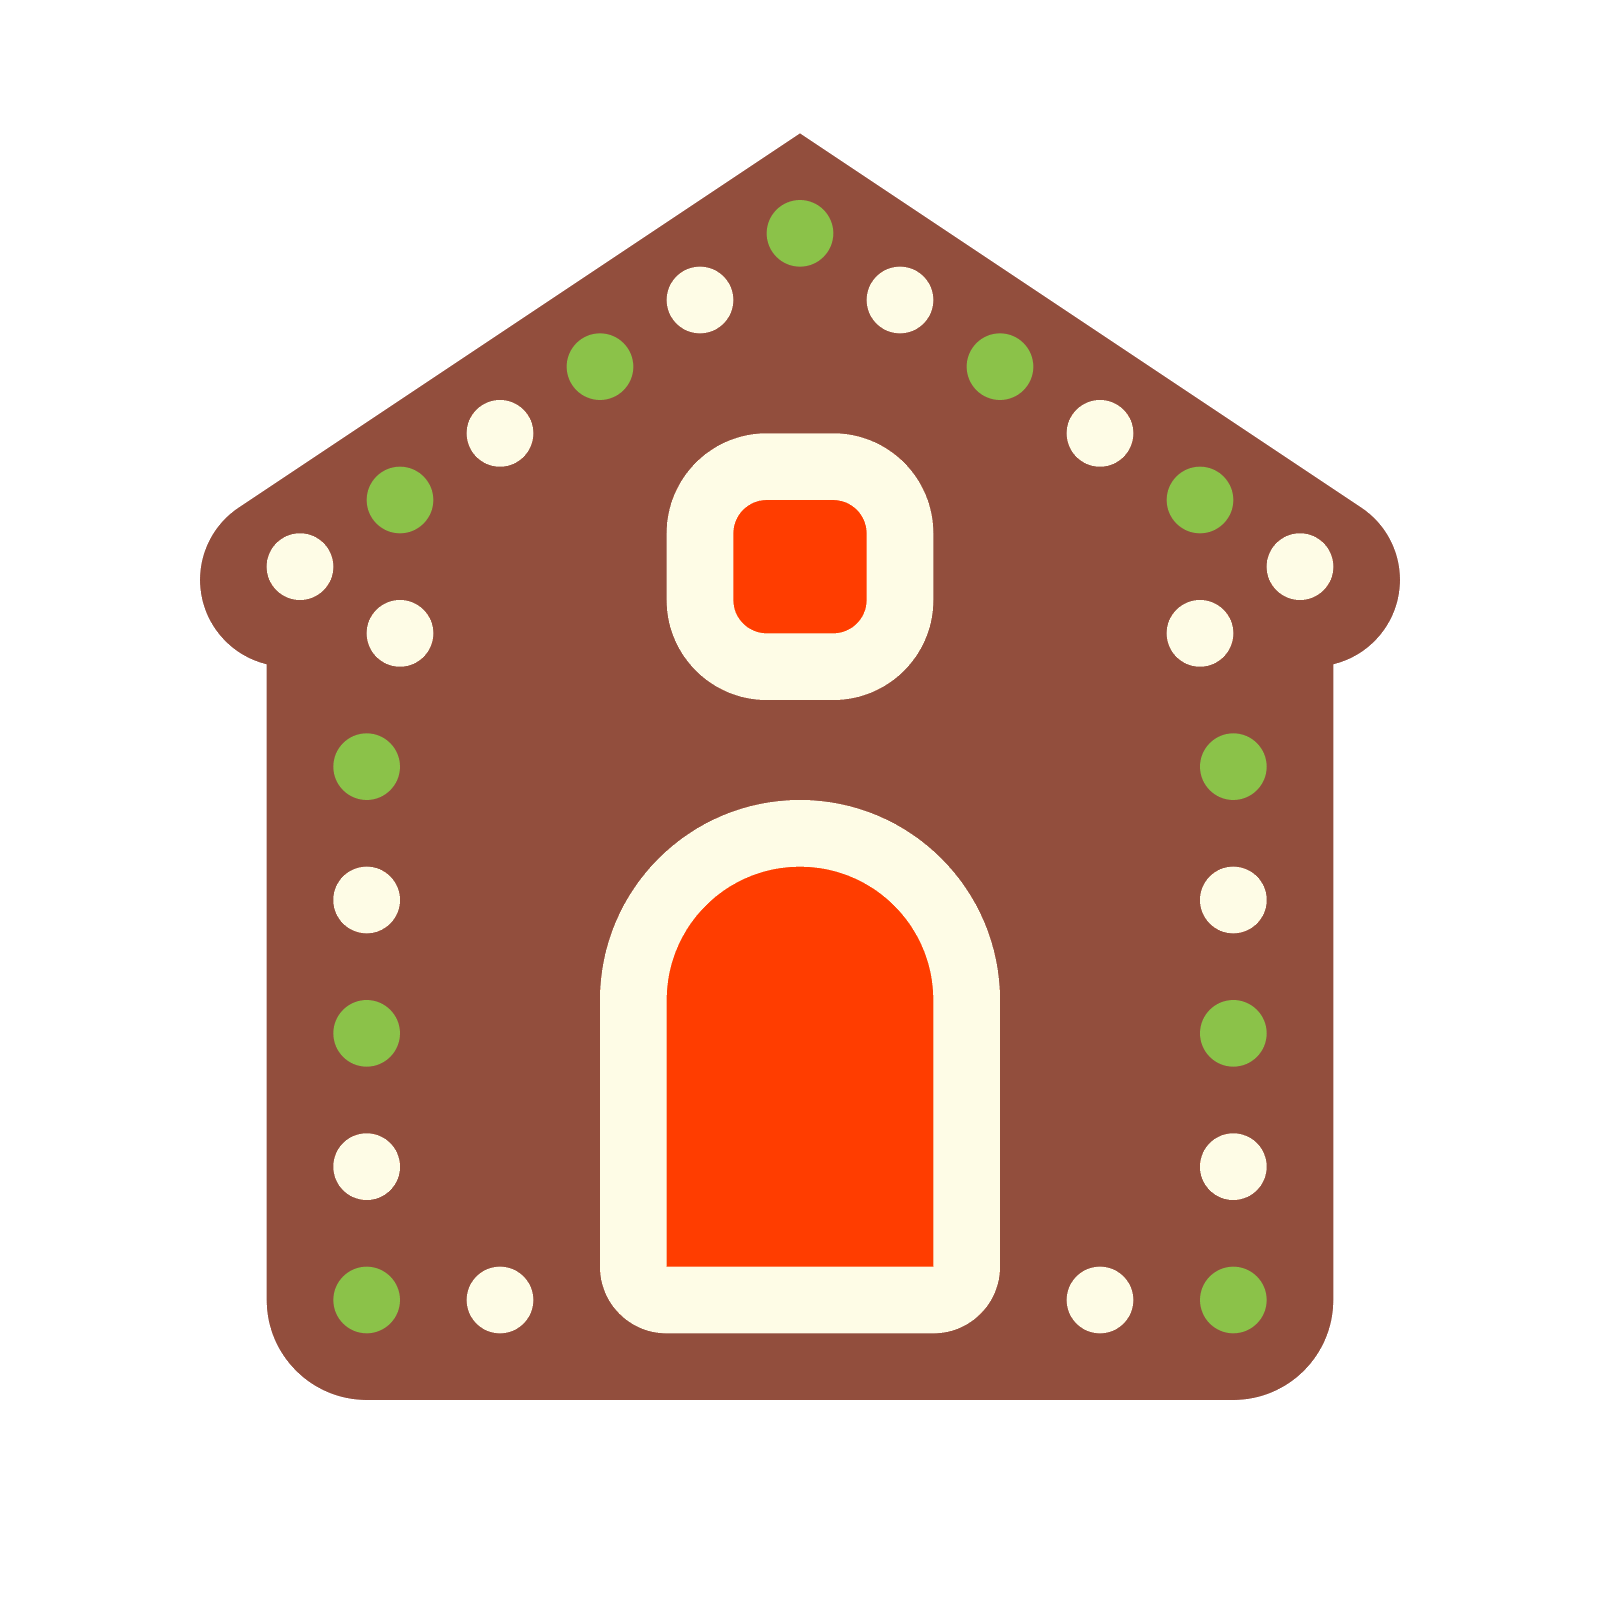 Gingerbread house windows clipart clip black and white stock Gingerbread House Icon - free download, PNG and vector clip black and white stock